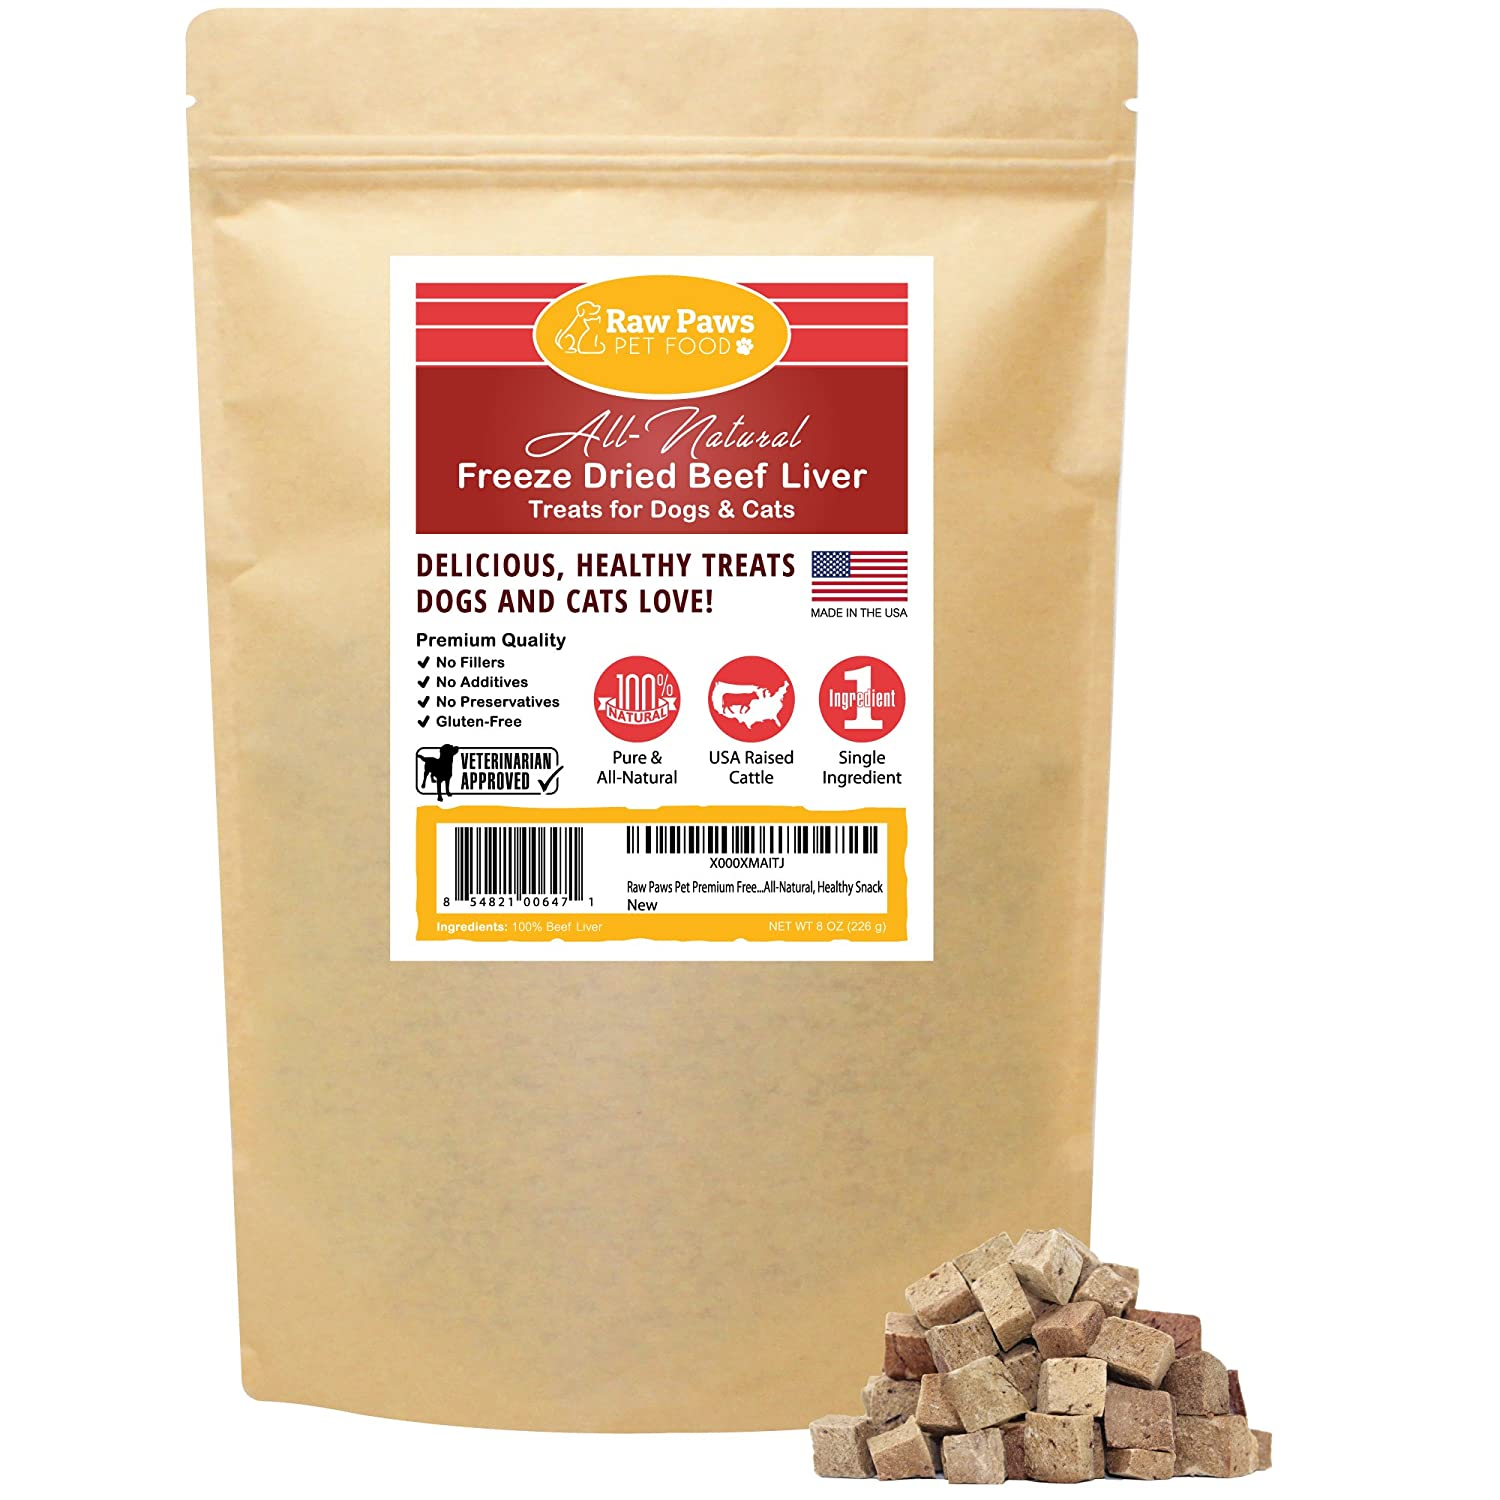 Raw Paws Freeze Dried Beef Liver Treats for Dogs Cats – Made in USA, Real, Healthy, Grain-Free, Crunchy Dry Dog Liver Treats – Freeze Dried Dog Treats for Small to Large Dogs, Training Treats